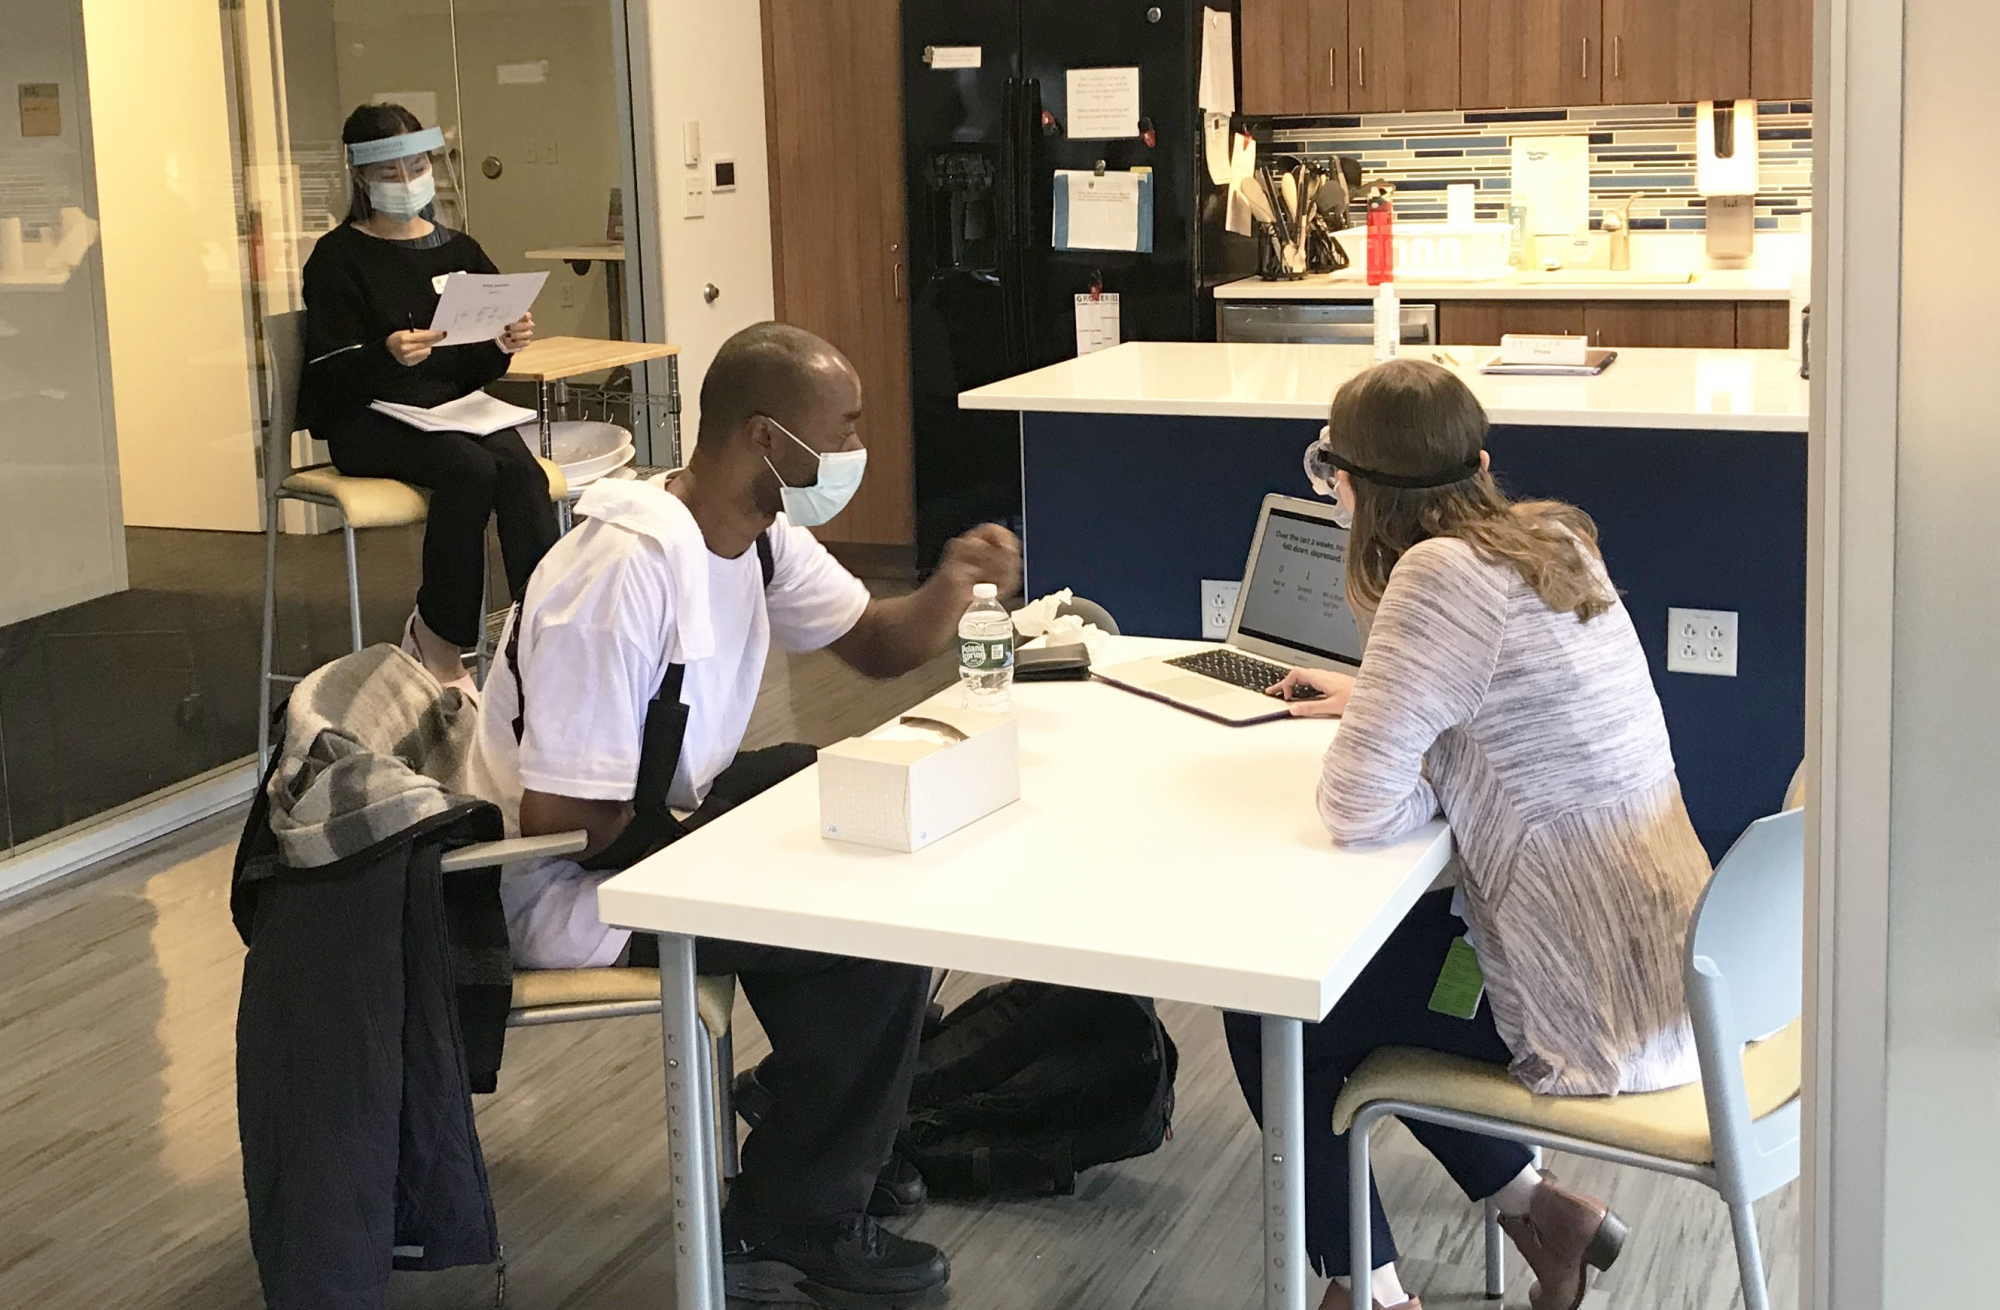 patient and OT student sitting at a table in the IMPACT center kitchen, both wear masks